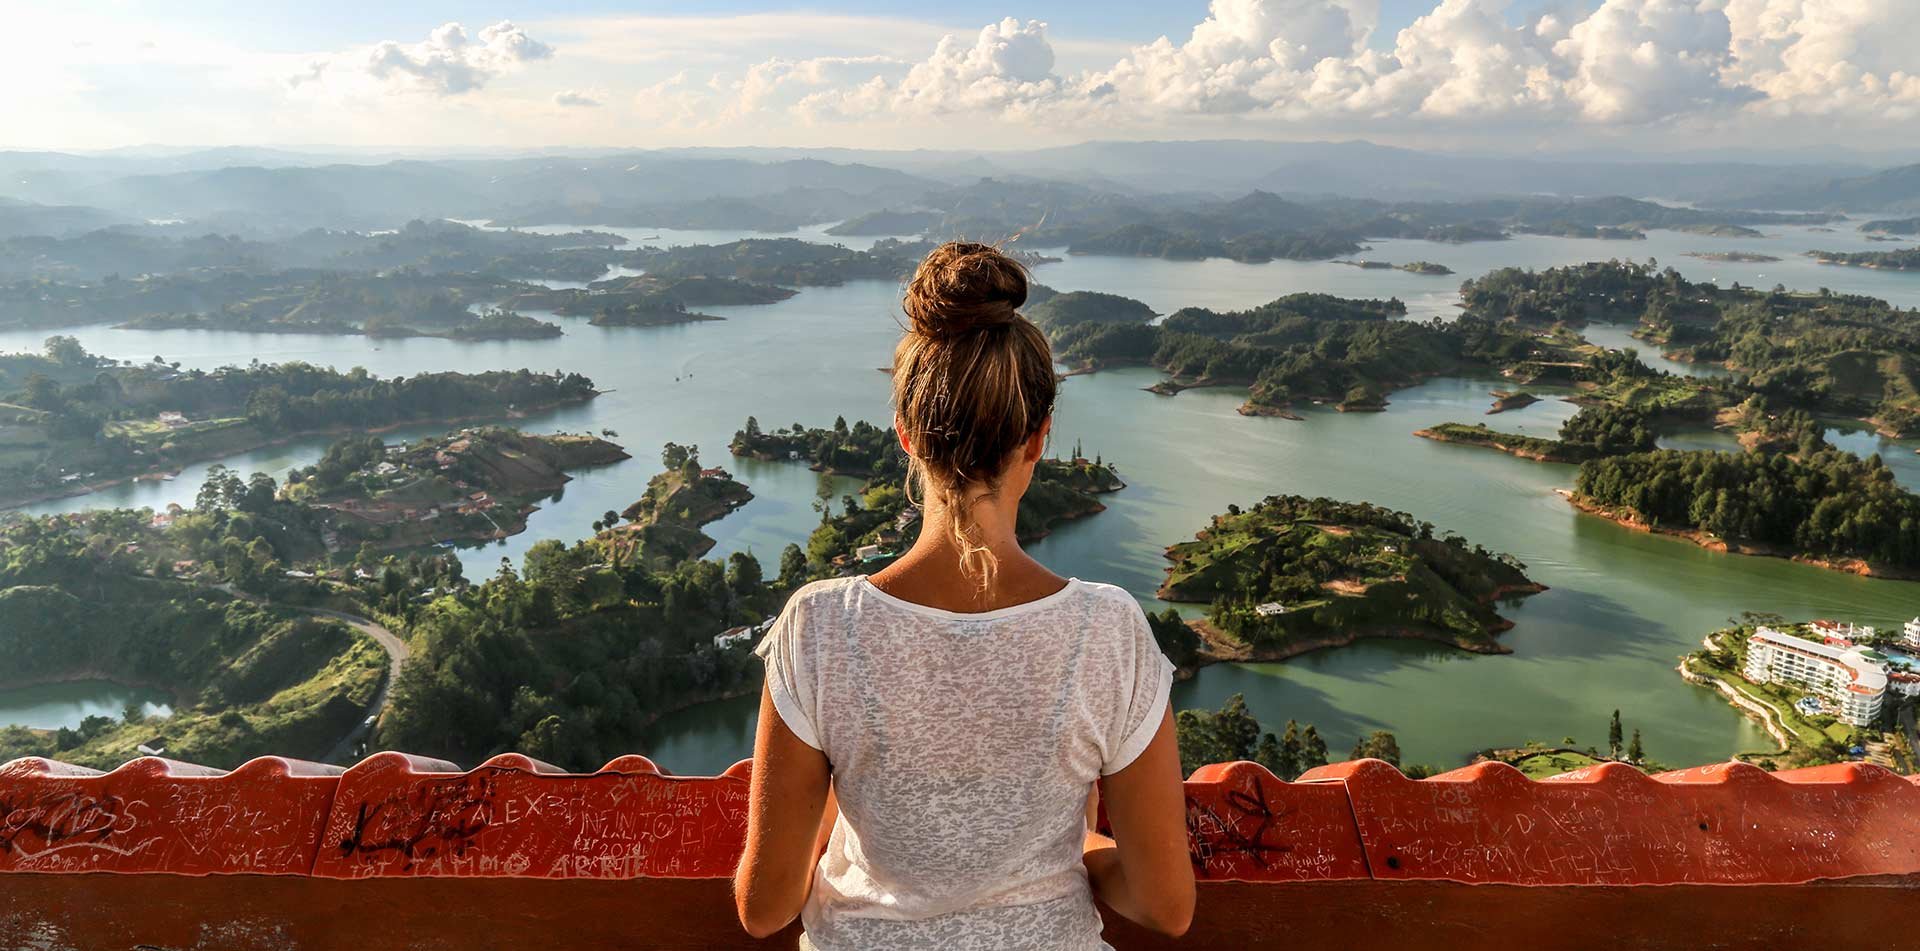 South America Colombia woman overlooking Guatape from scenic viewpoint - luxury vacation destinations